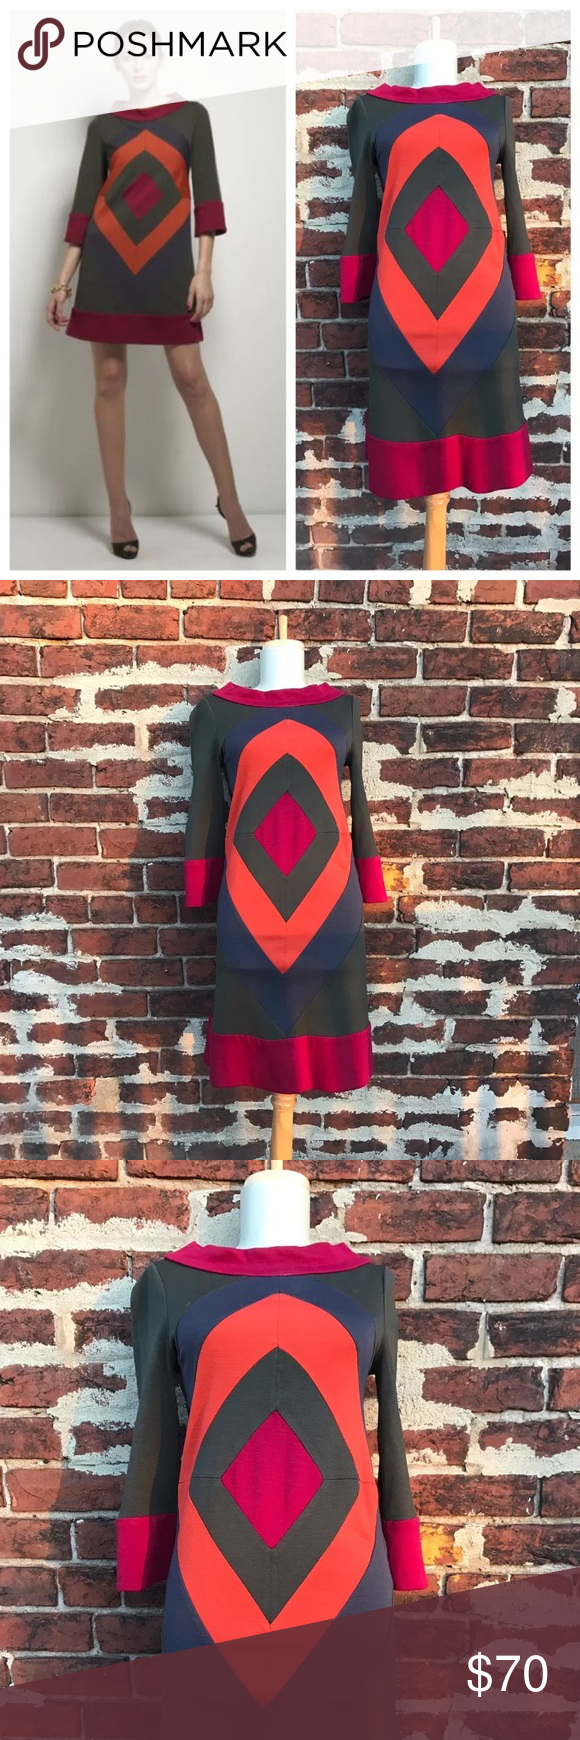 Diane von Furstenberg 2 Wool Ungaro Shift Dress You're looking at a beautiful, retro dress by Diane von Furstenberg.   Size 2   Wool